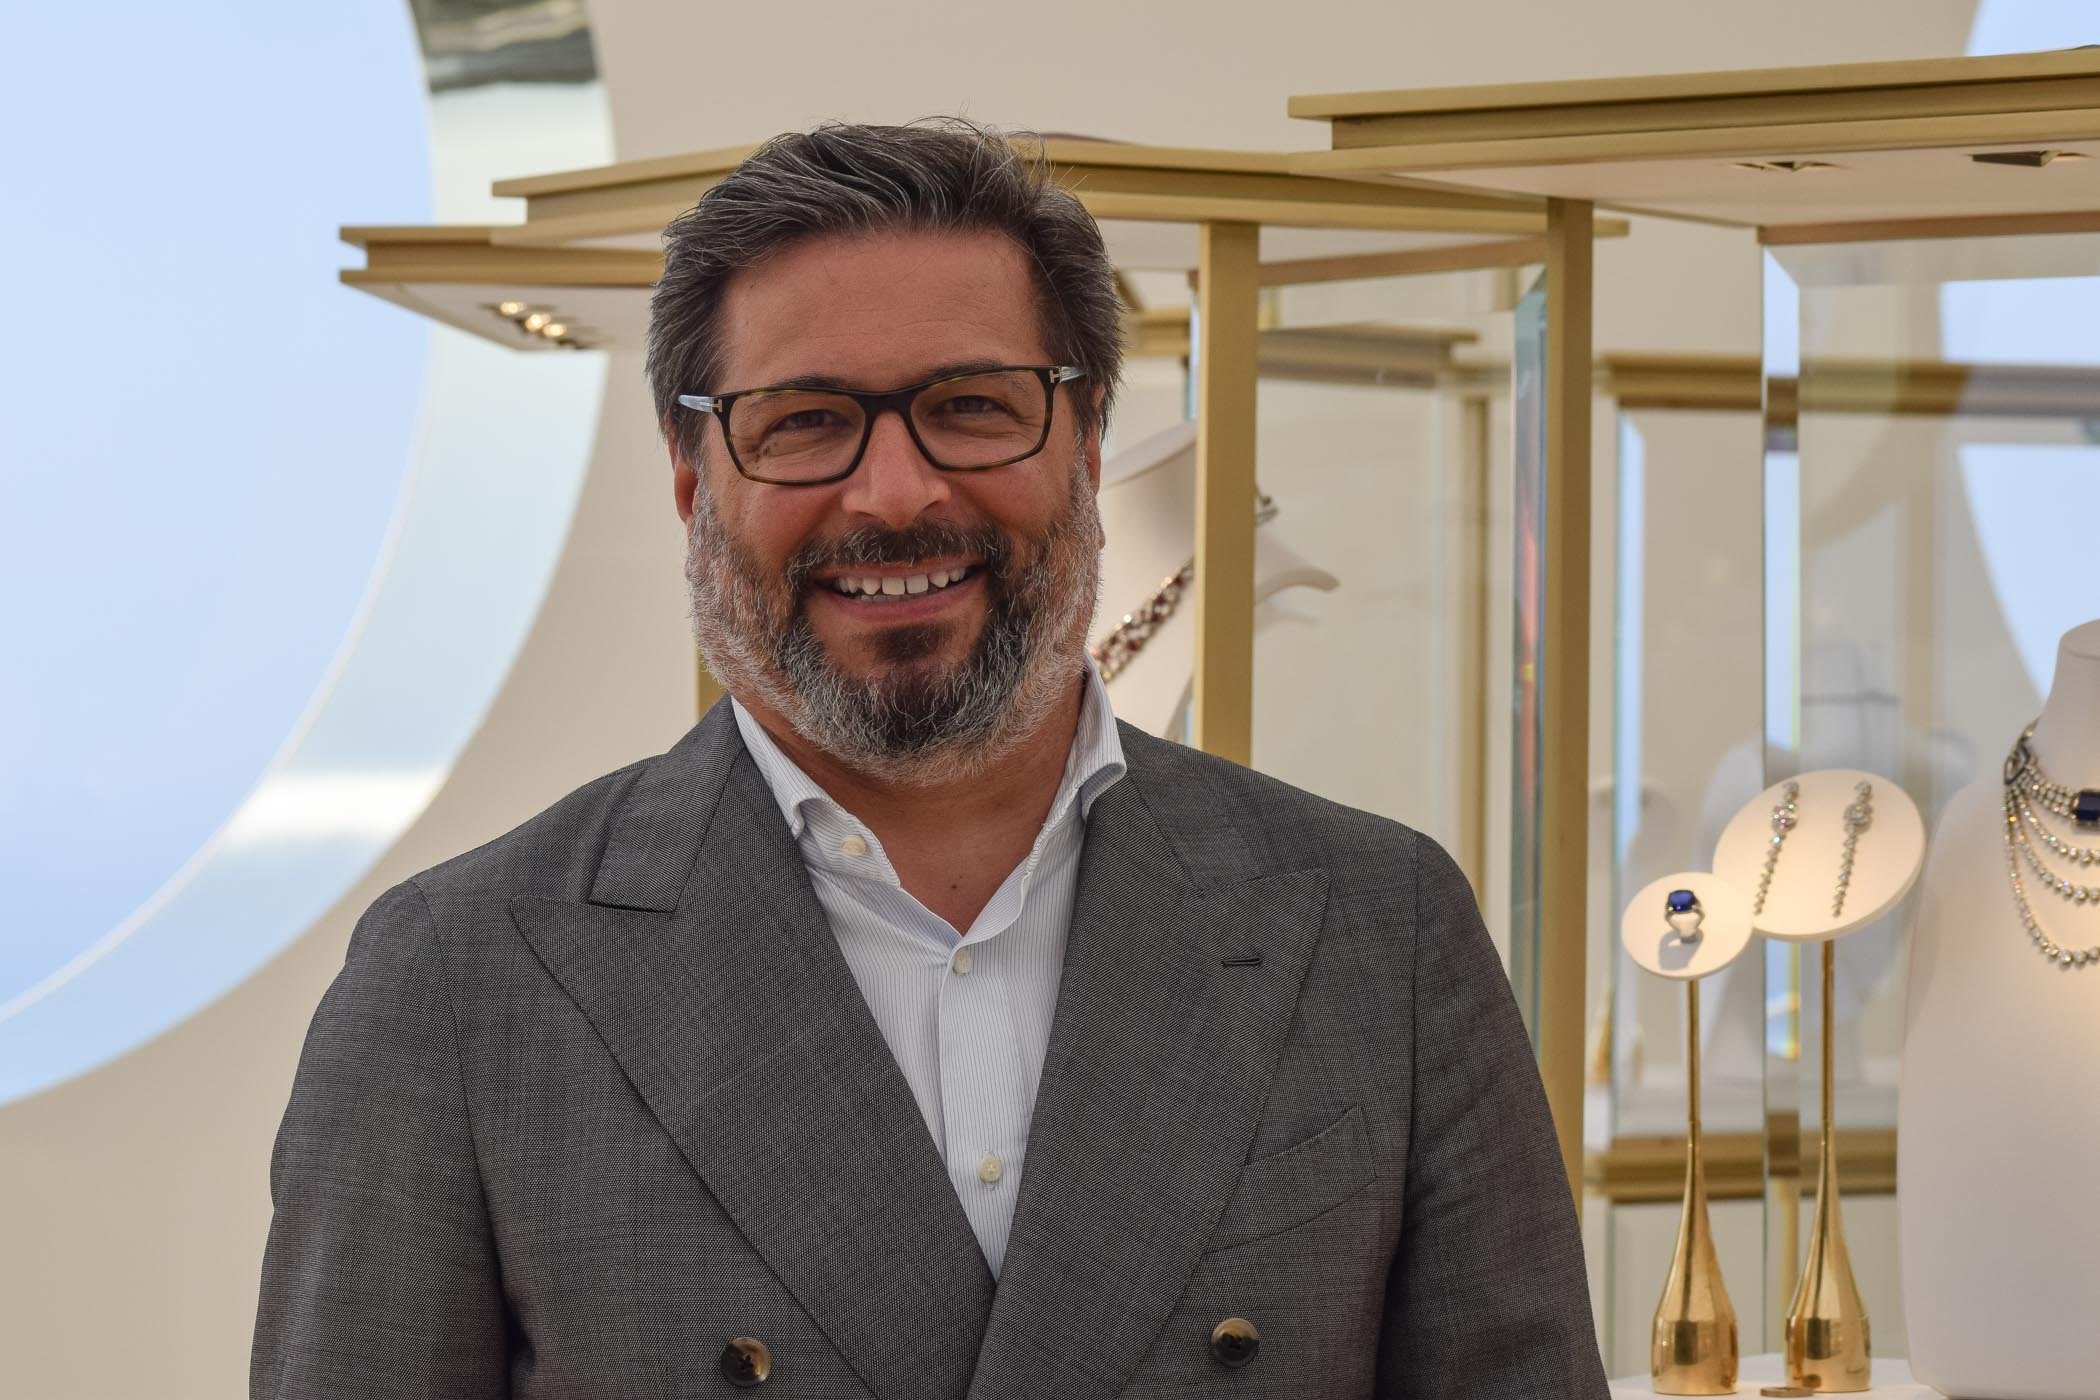 Guido Terreni Managing Director Bvlgari watch division